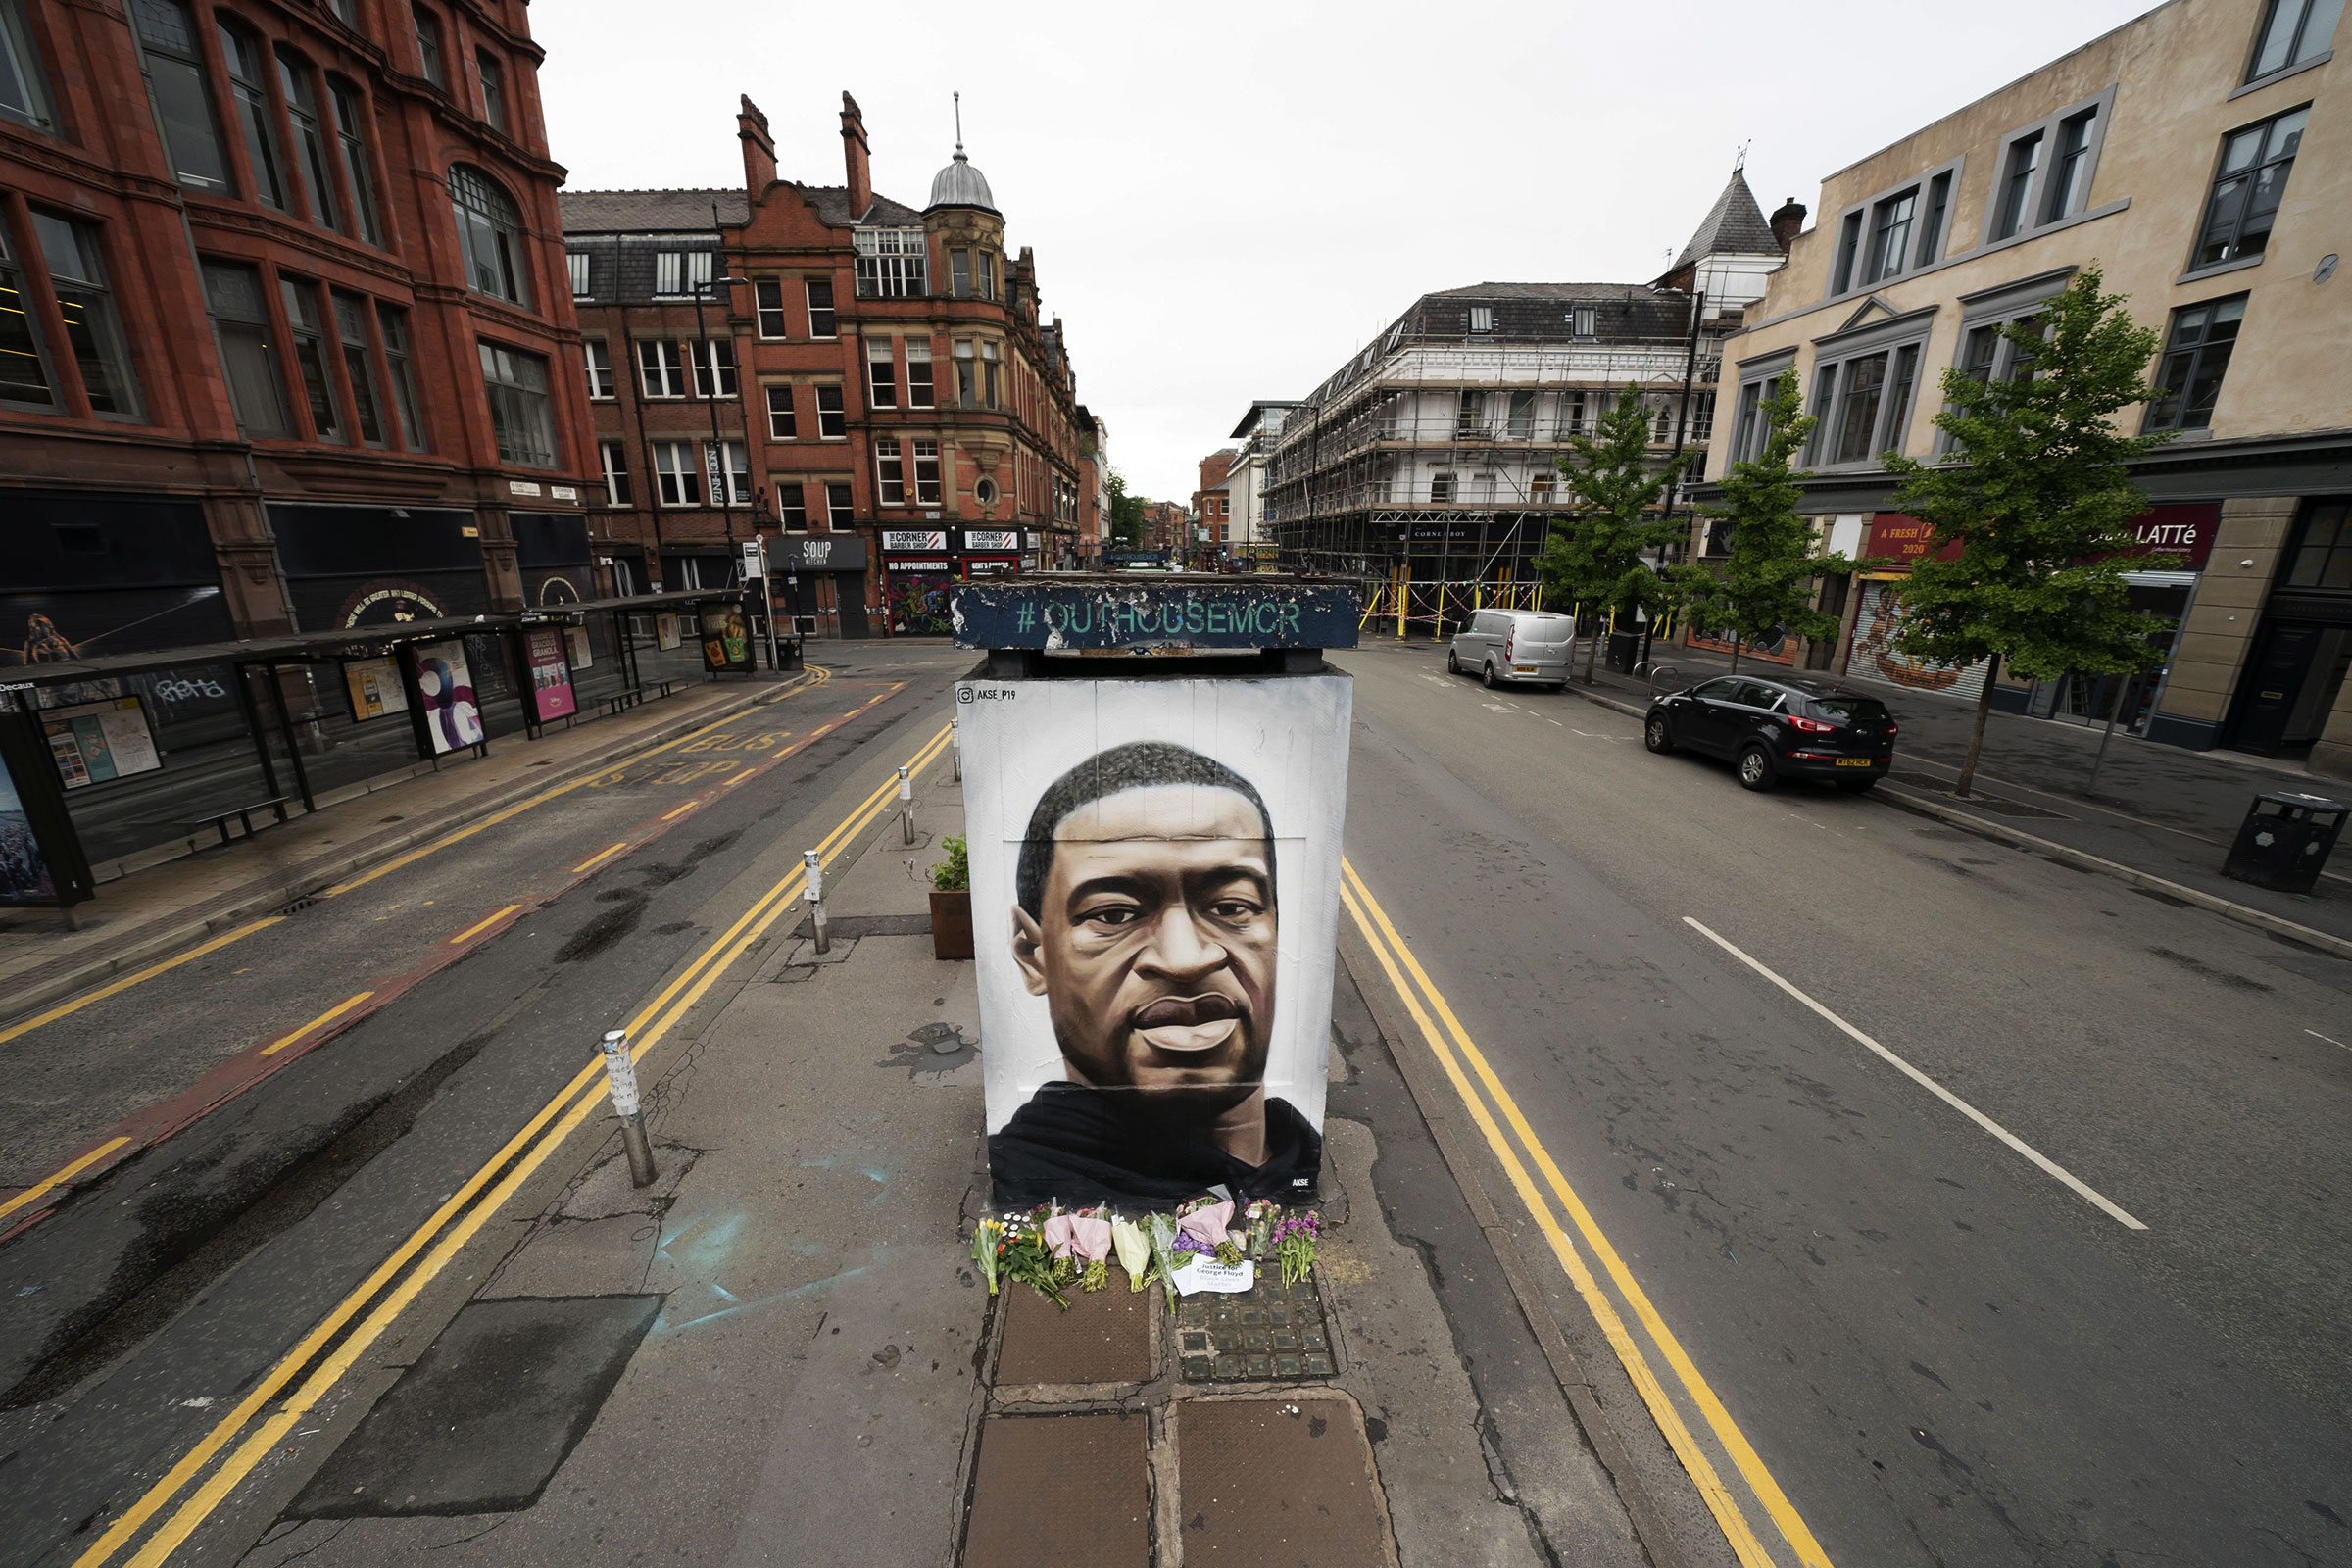 A mural of George Floyd in central Manchester, Britain on June 4, 2020.